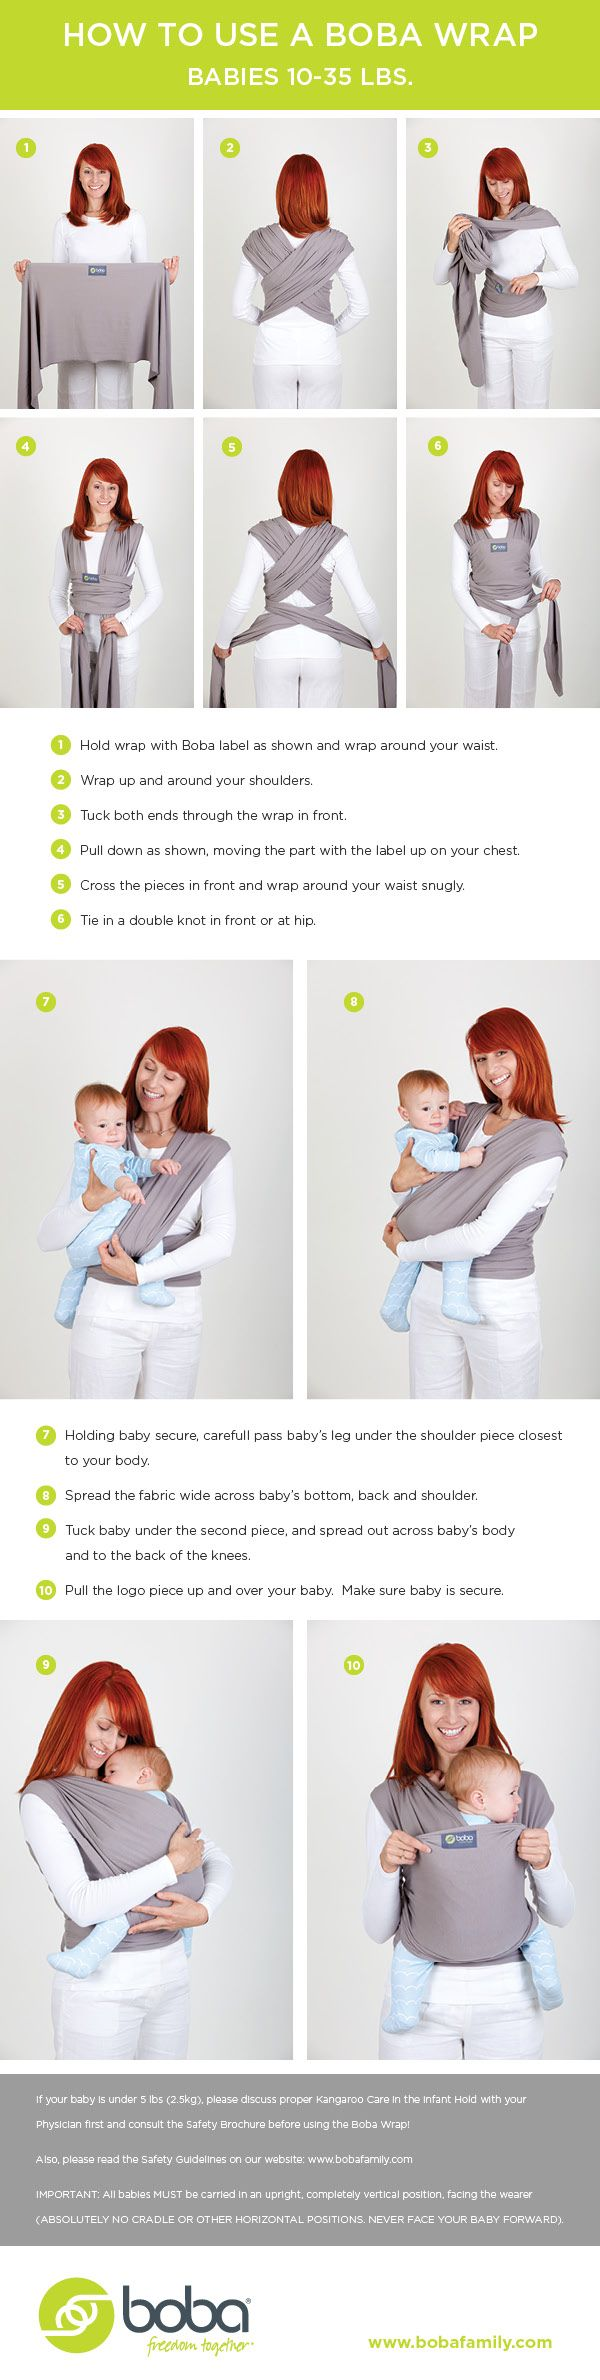 moby wrap instructions video